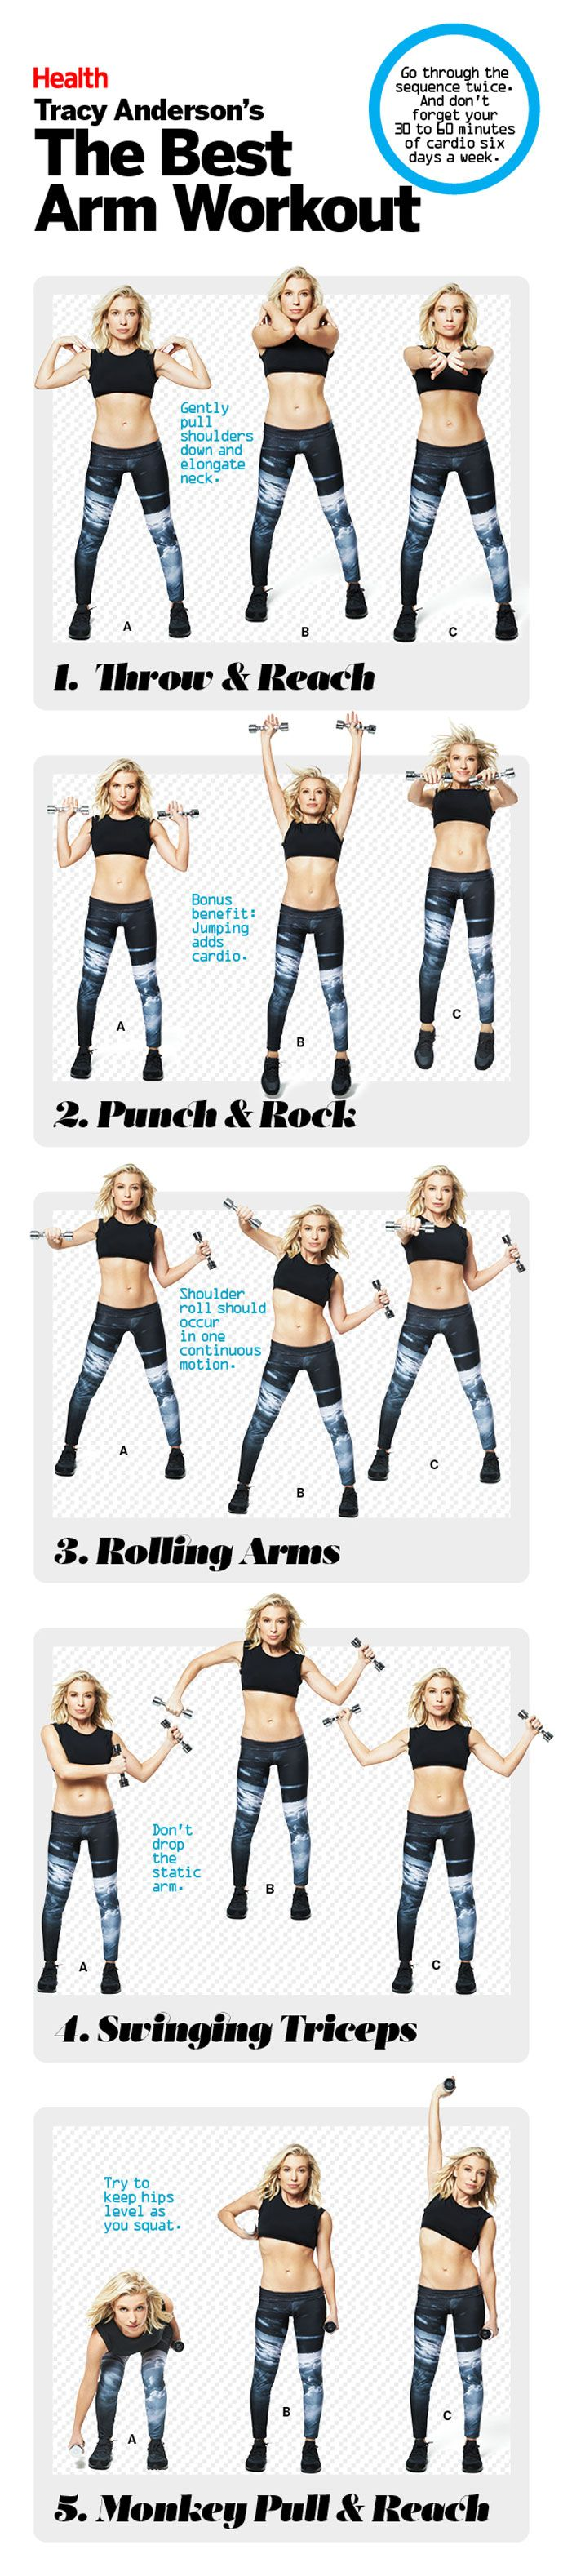 Get the biceps (and triceps and shoulders) you crave with this upper-body workout from celebrity trainer Tracy Anderson.